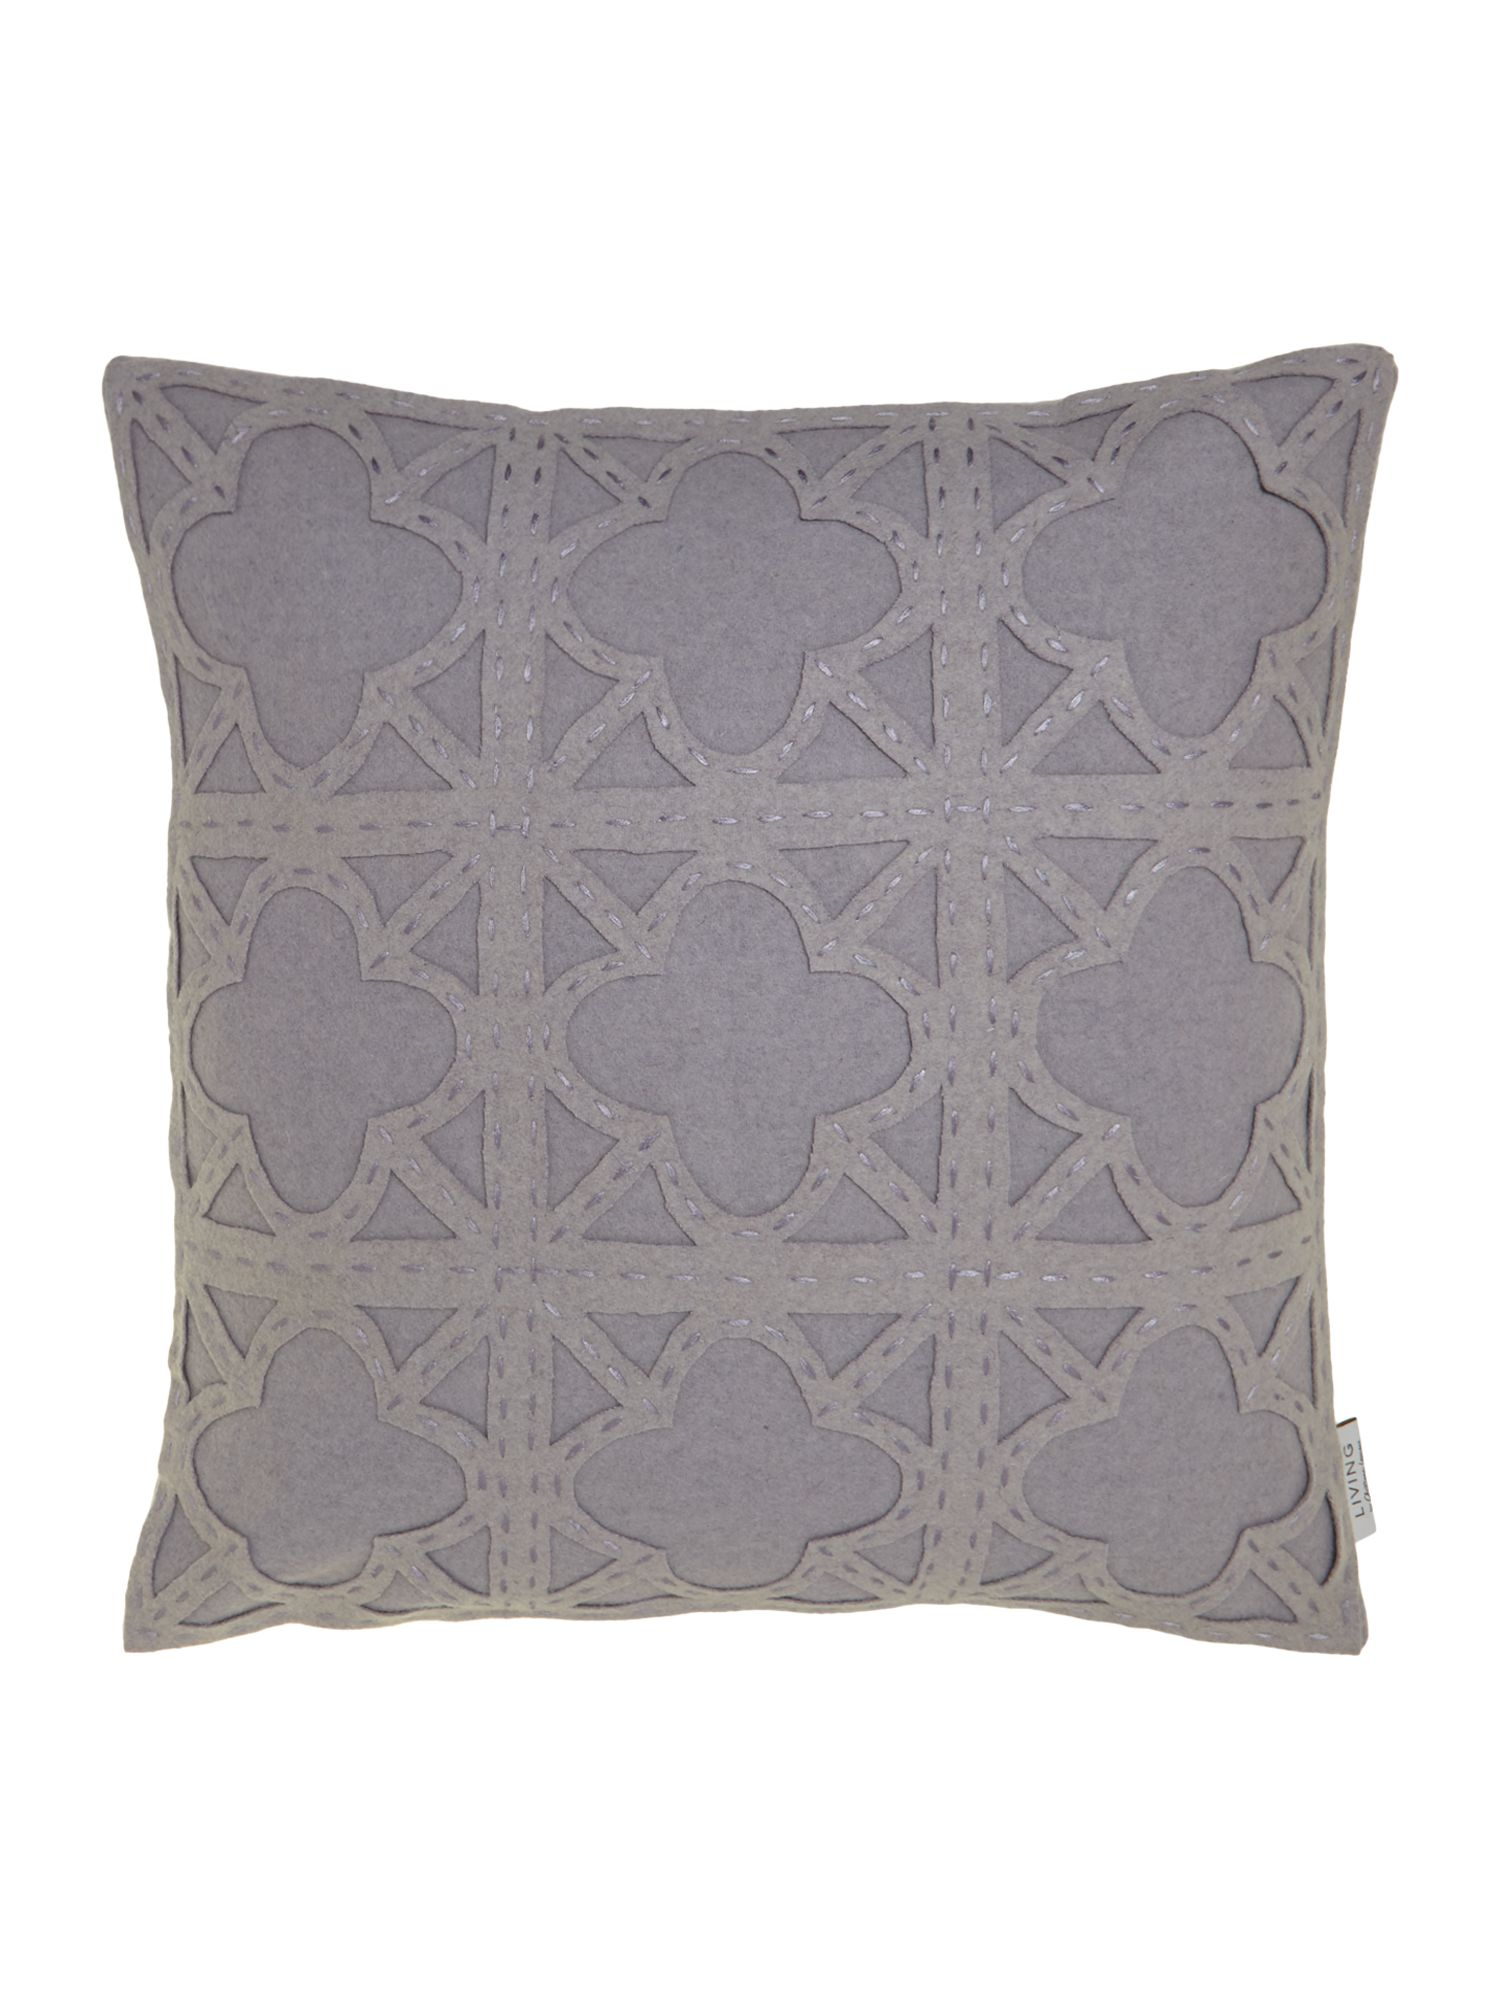 Felt applique maze cushion, grey